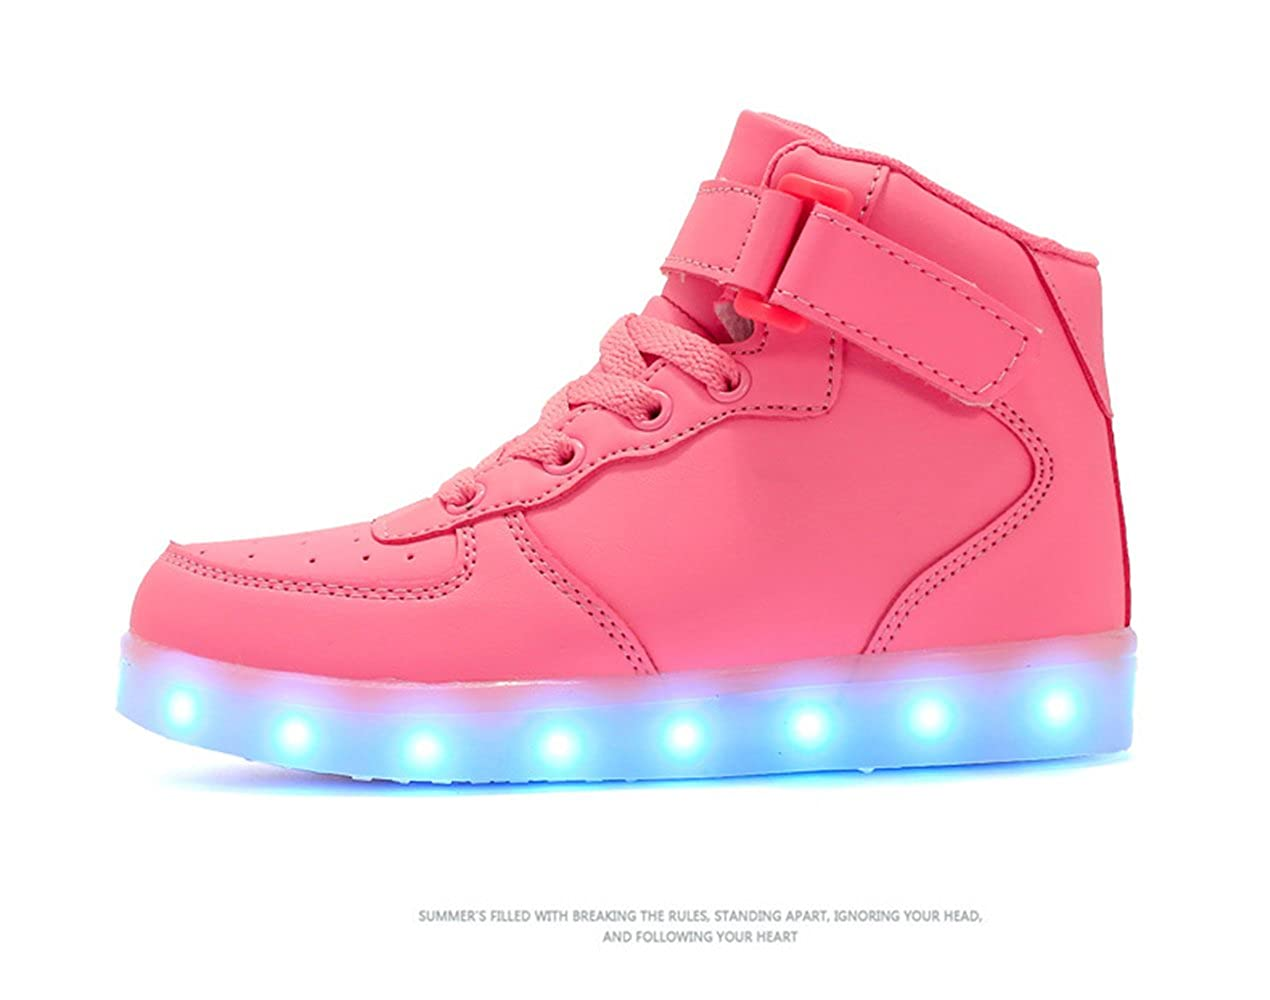 xiaoyang High Top USB Charging LED Shoes Flashing Fashion Sneakers for Kids Boots Girls Boys